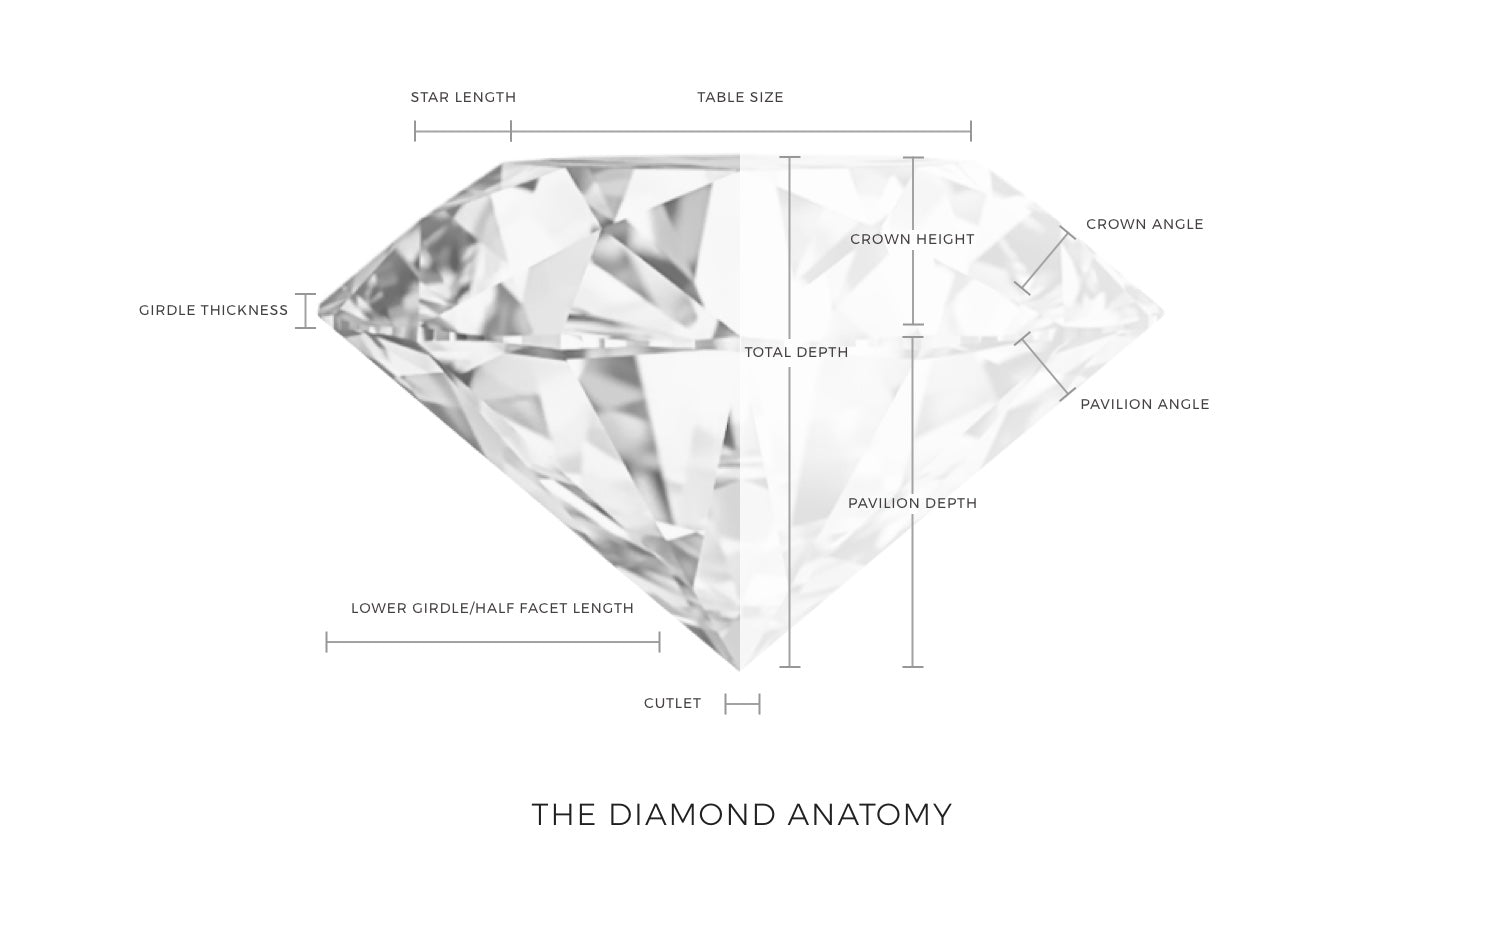 The Diamond Anatomy